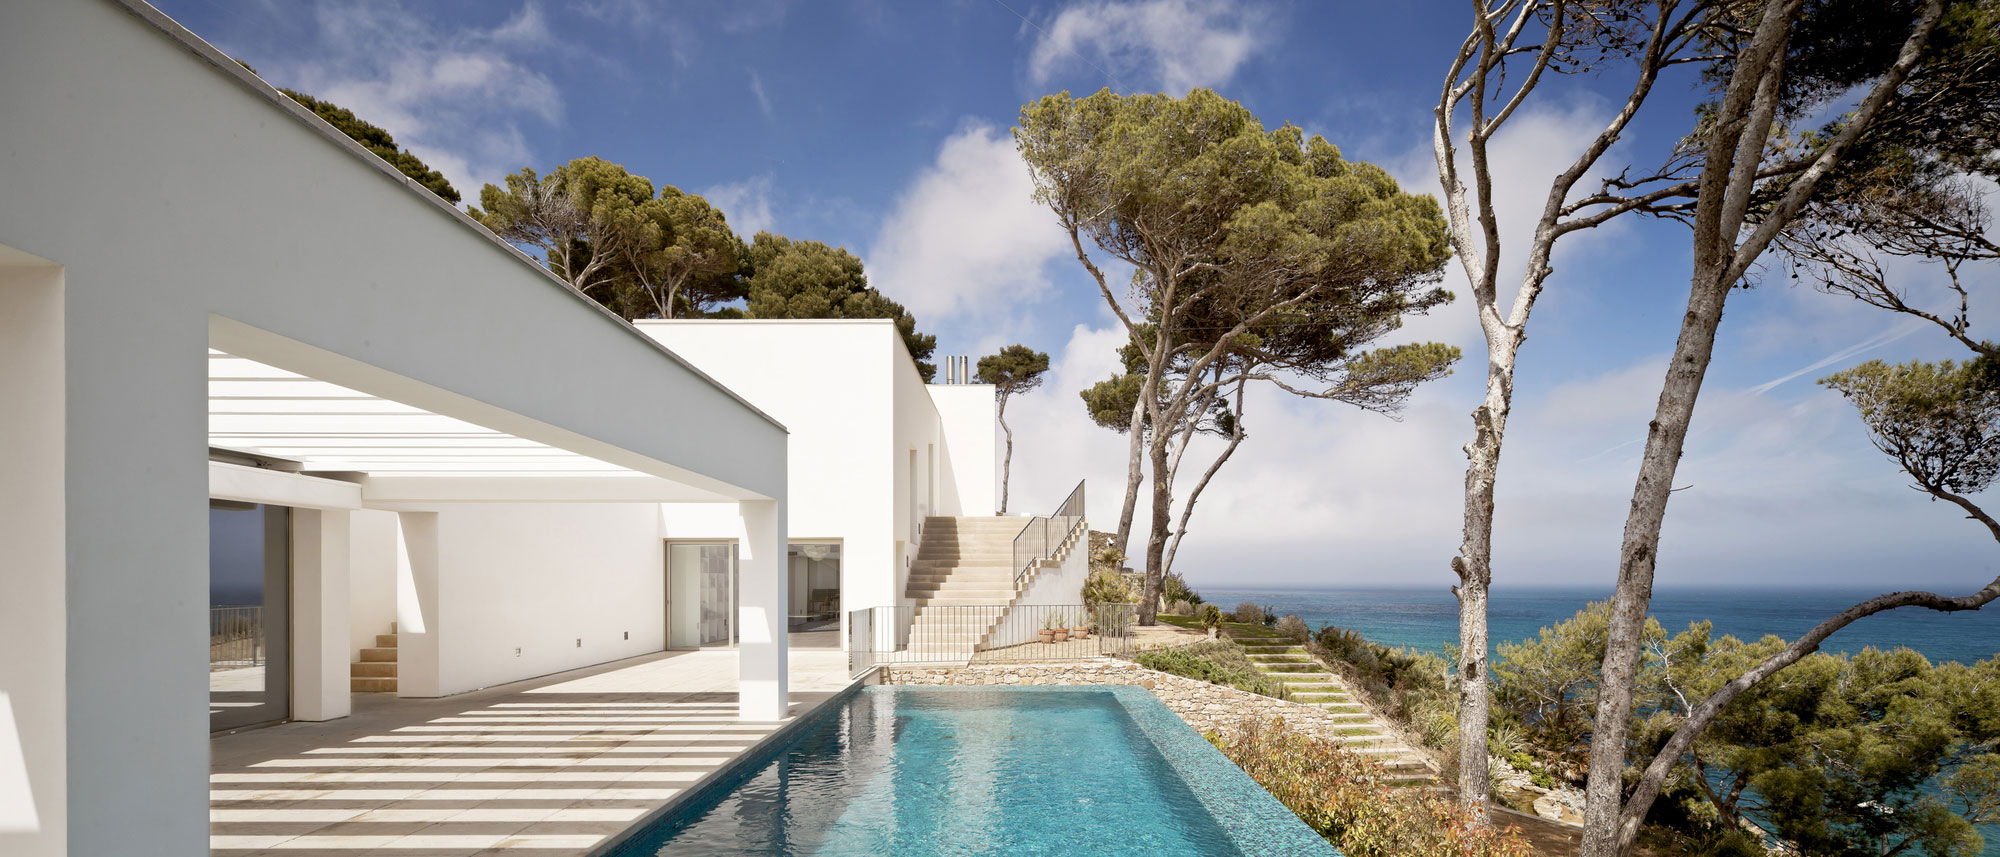 Infinity Pool, Terrace, Waterfront House in Costa Brava, Spain